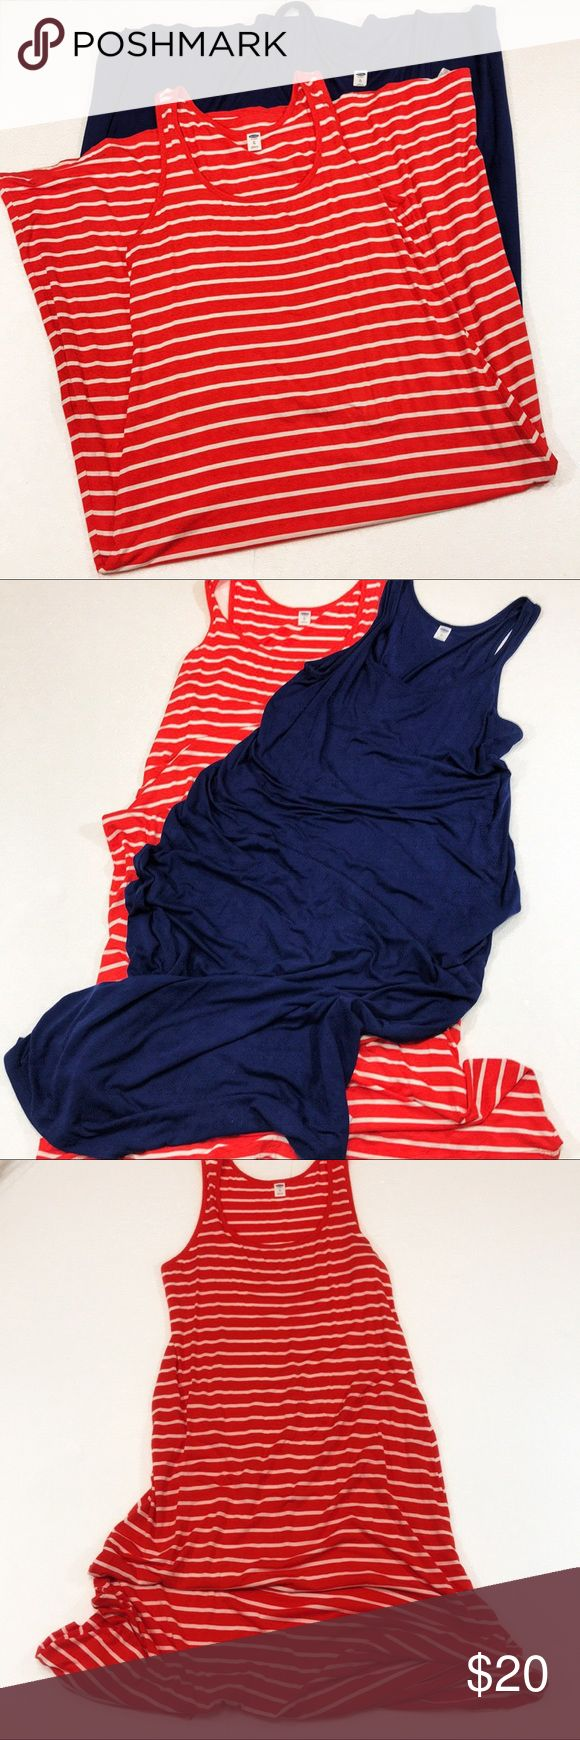 Bundle of 2 Old Navy Jersey Maxi Dresses Size XL Bundle of 2 Old Navy sleeveless jersey Maxi Dresses Size XL. EUC, navy dress worn twice and orange and white striped dress worn once. Stretchy comfortable cool material. Measurements are in the photos. Old Navy Dresses Maxi